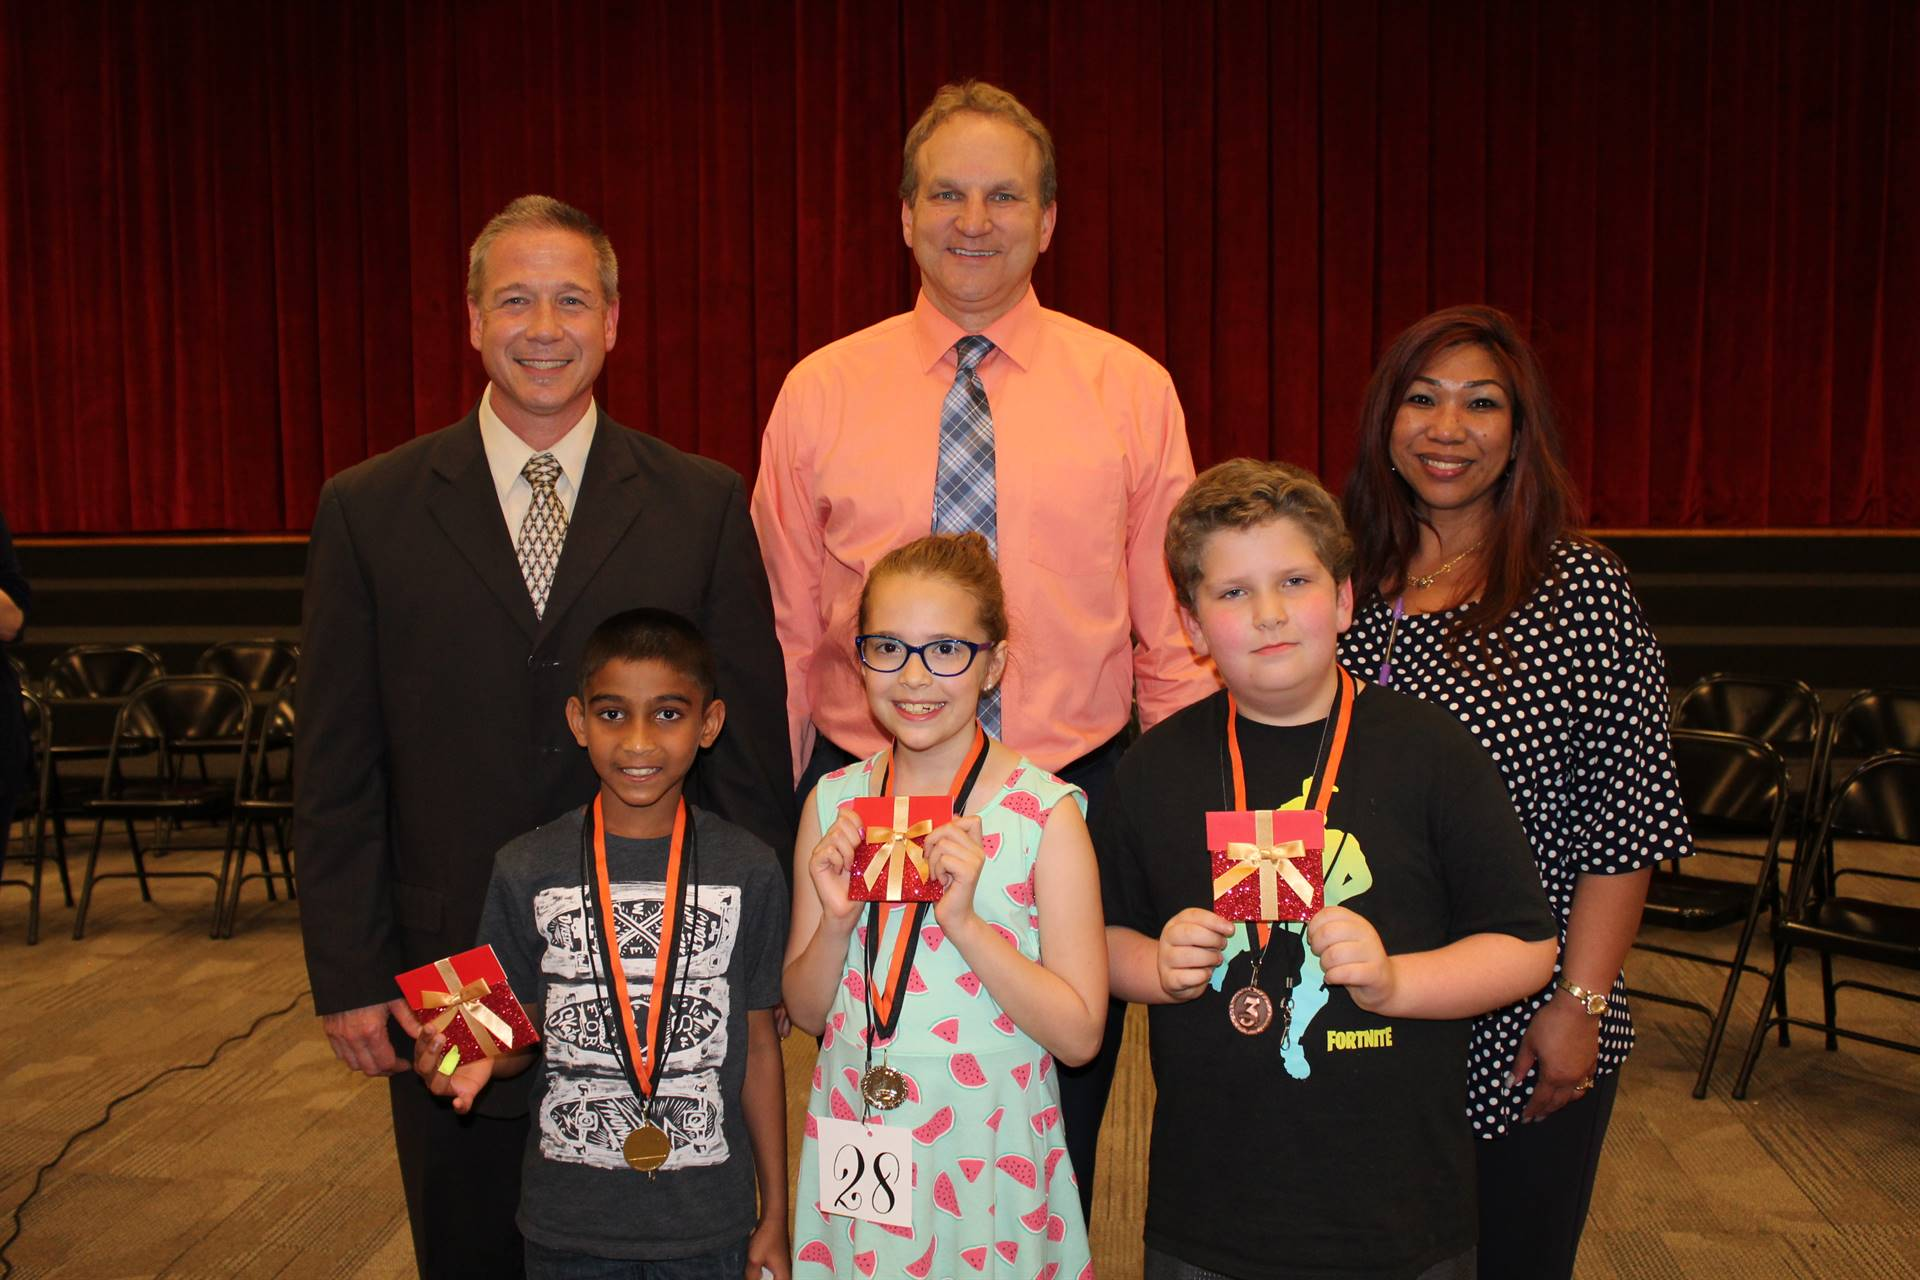 The Top 3 spellers and their Principals